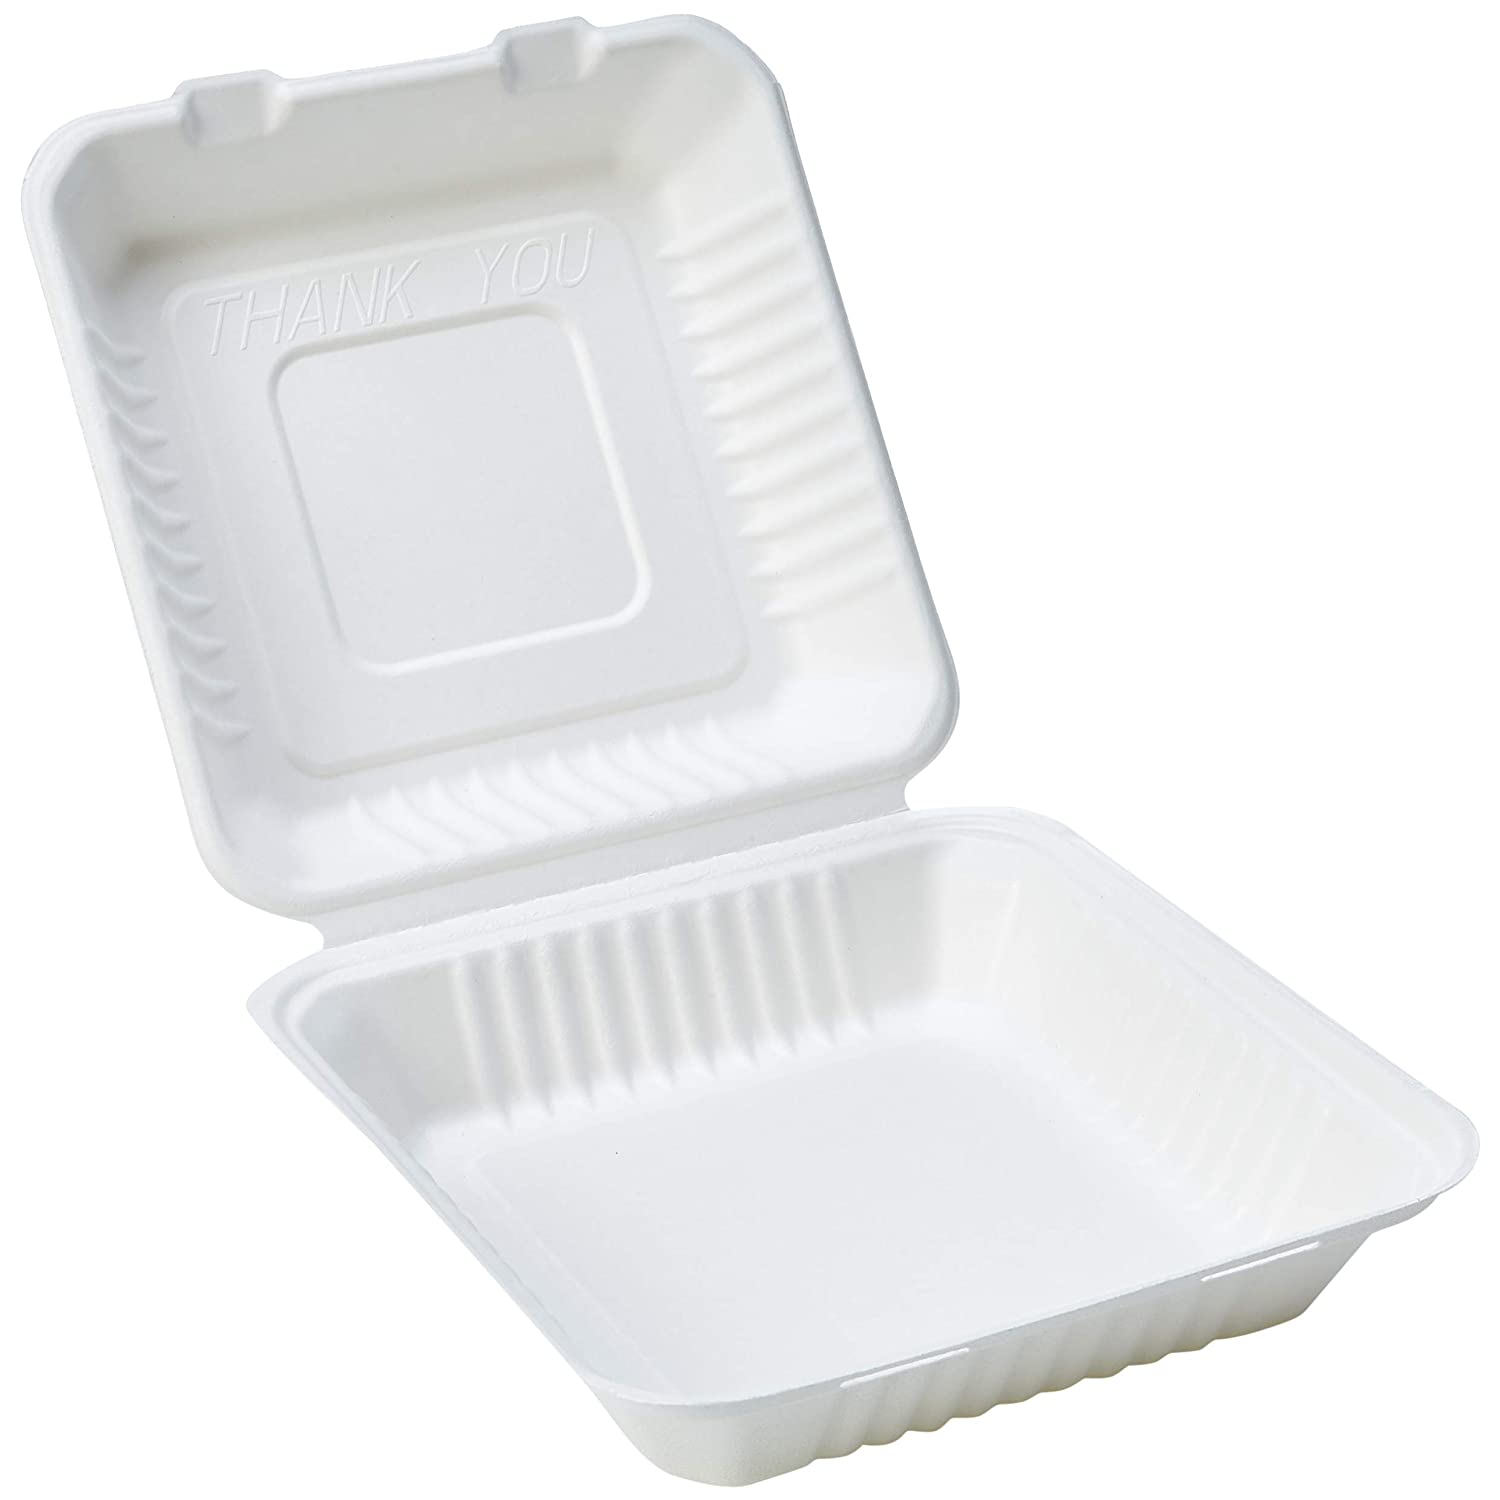 "AmazonBasics Compostable Clamshell Hinged Food Container, 9.2"" x 9"" x 3"", Pack of 200"